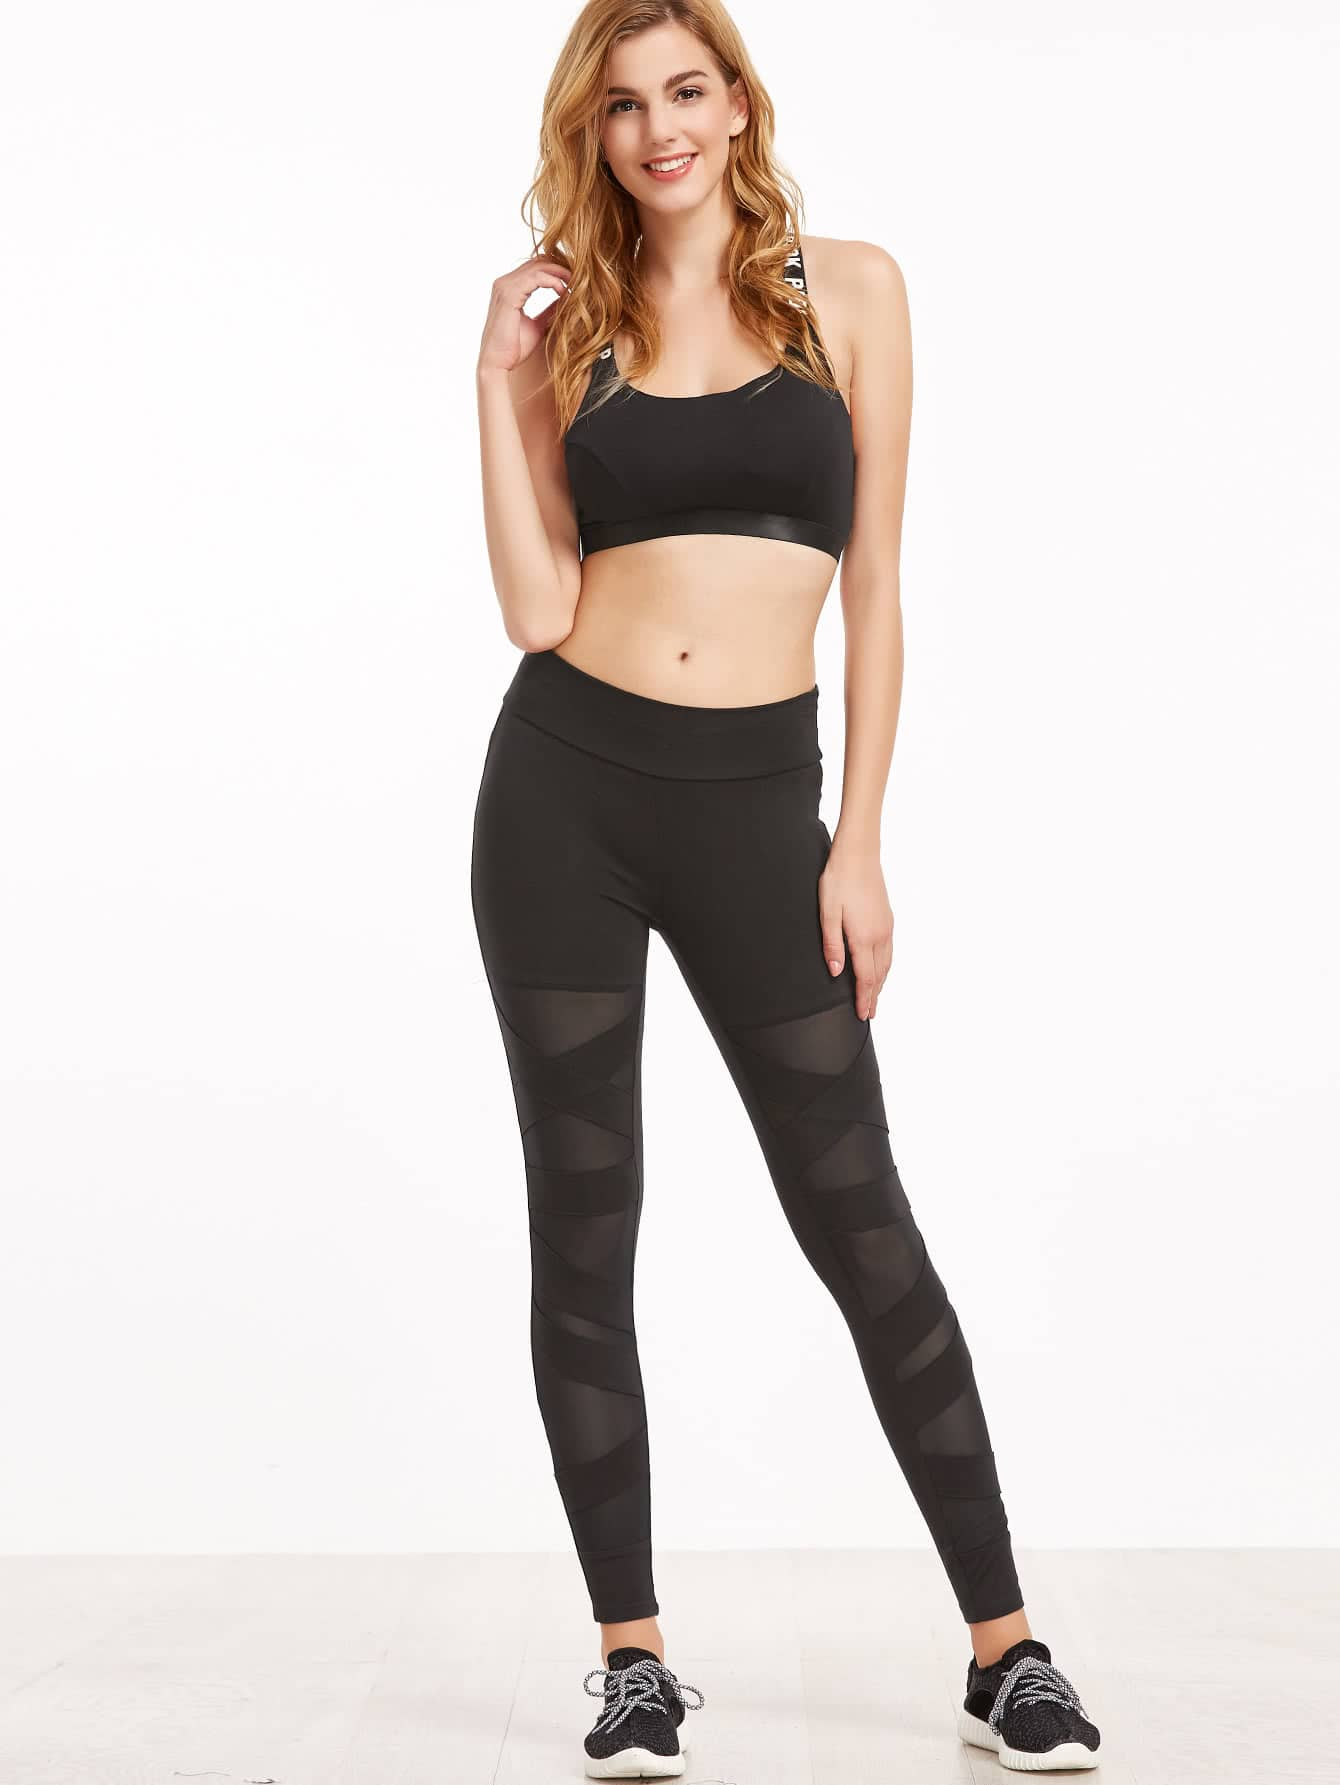 leggings161128702_2